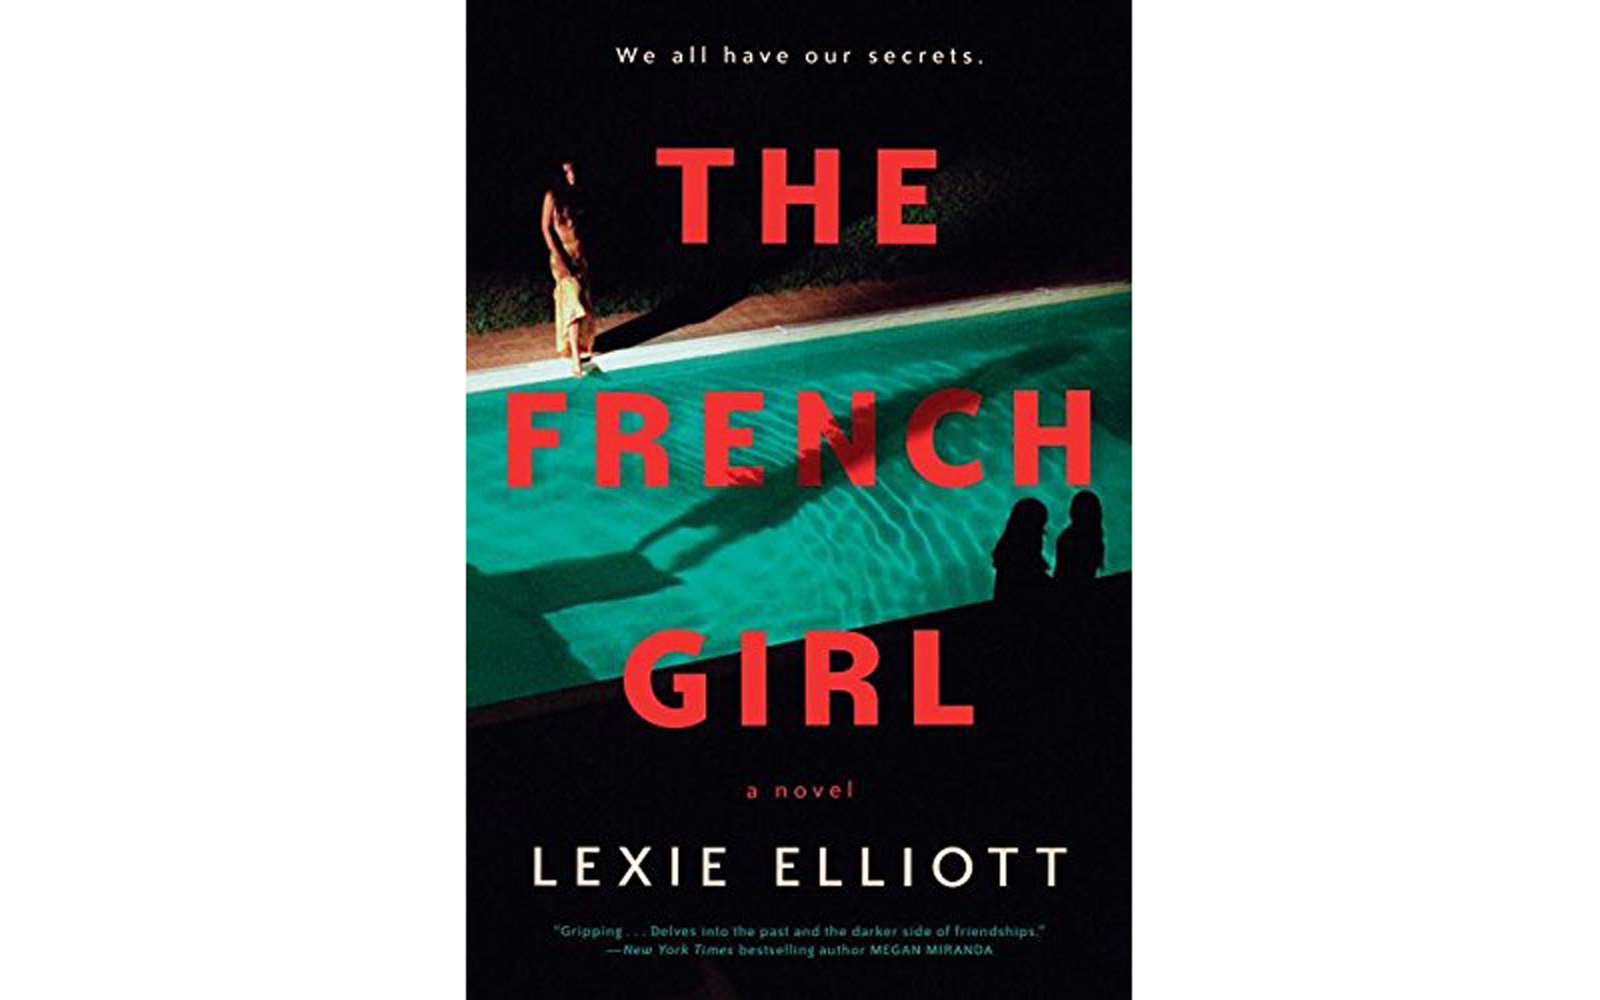 'The French Girl' by Lexie Elliott